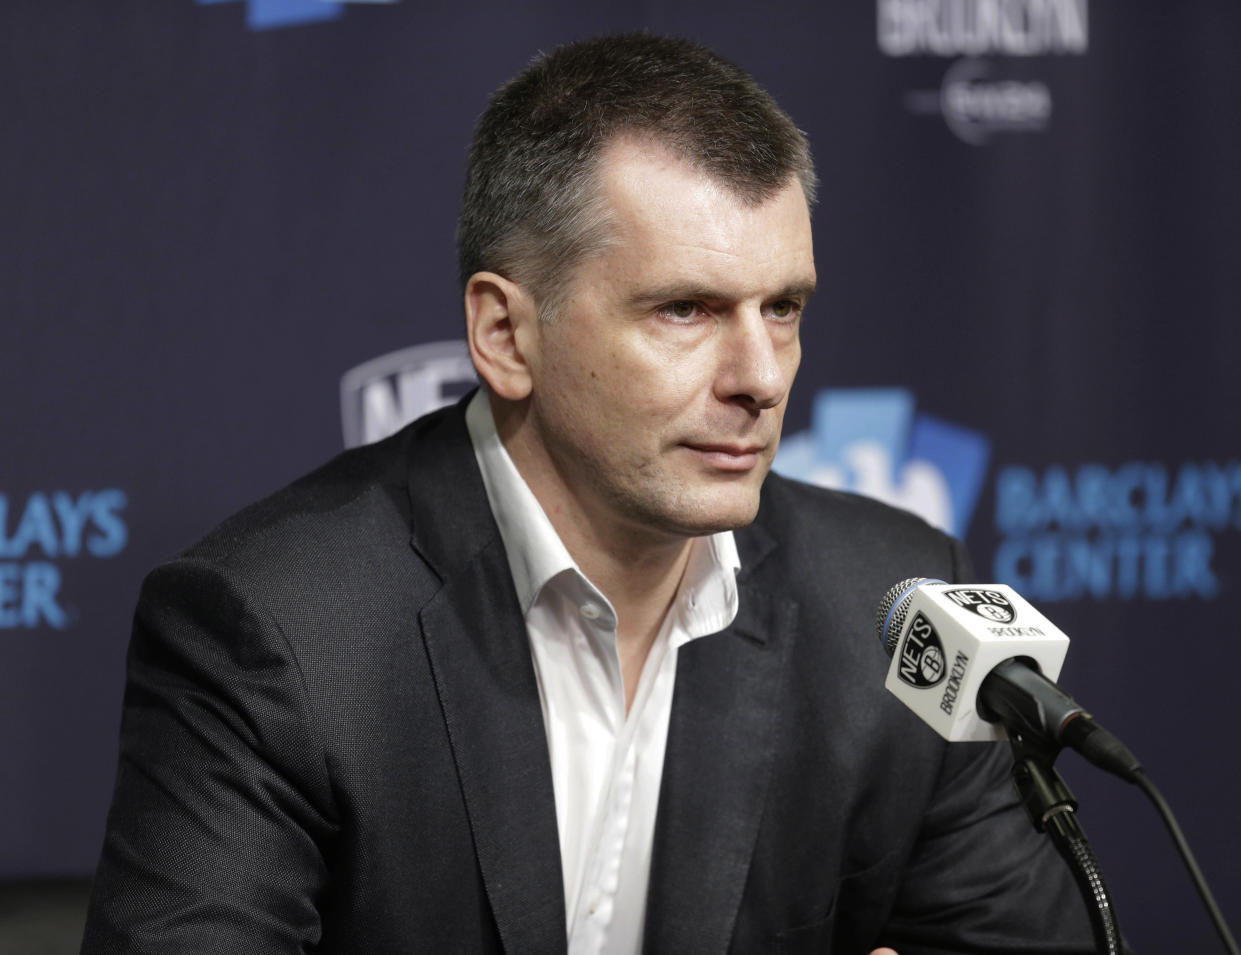 Brooklyn Nets owner Mikhail Prokhorov speaks during an NBA basketball news conference in New York in 2016. (Photo: Seth Wenig/AP)